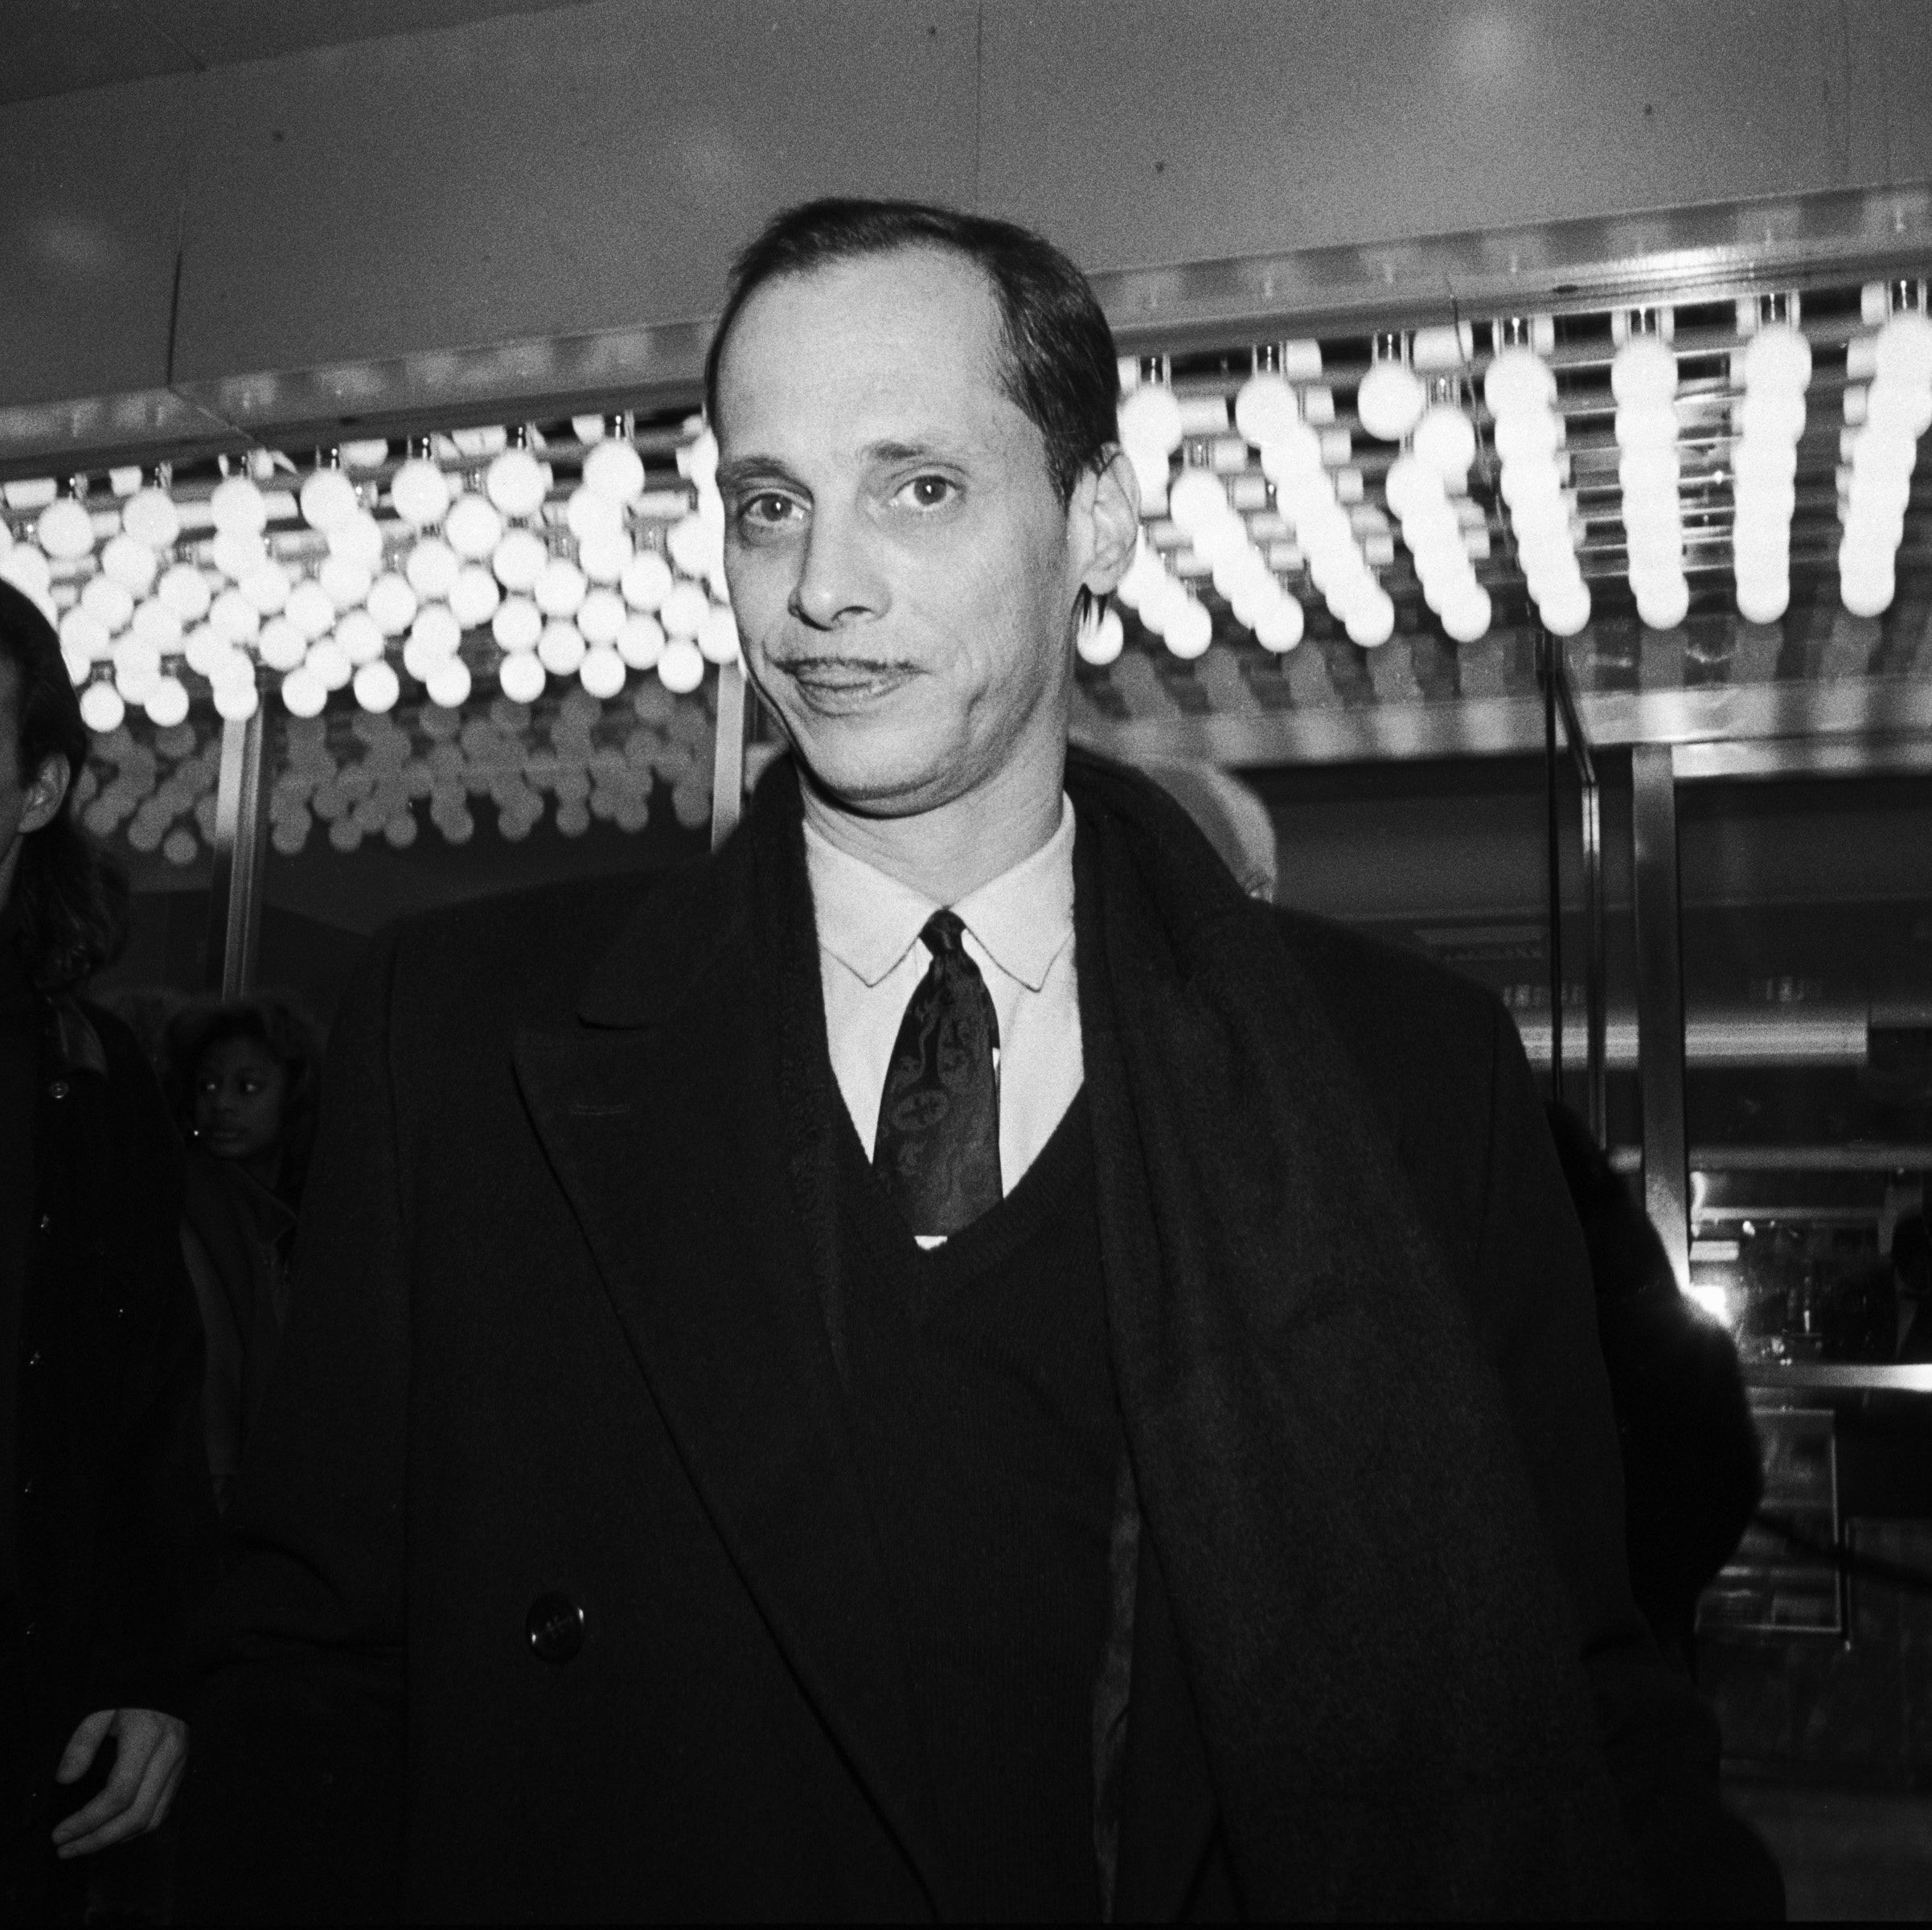 1988: John Waters How did the famous actor/director manage to keep such a pencil-thin 'stache that barely grazed his upper lip? Perhaps we'll never know.